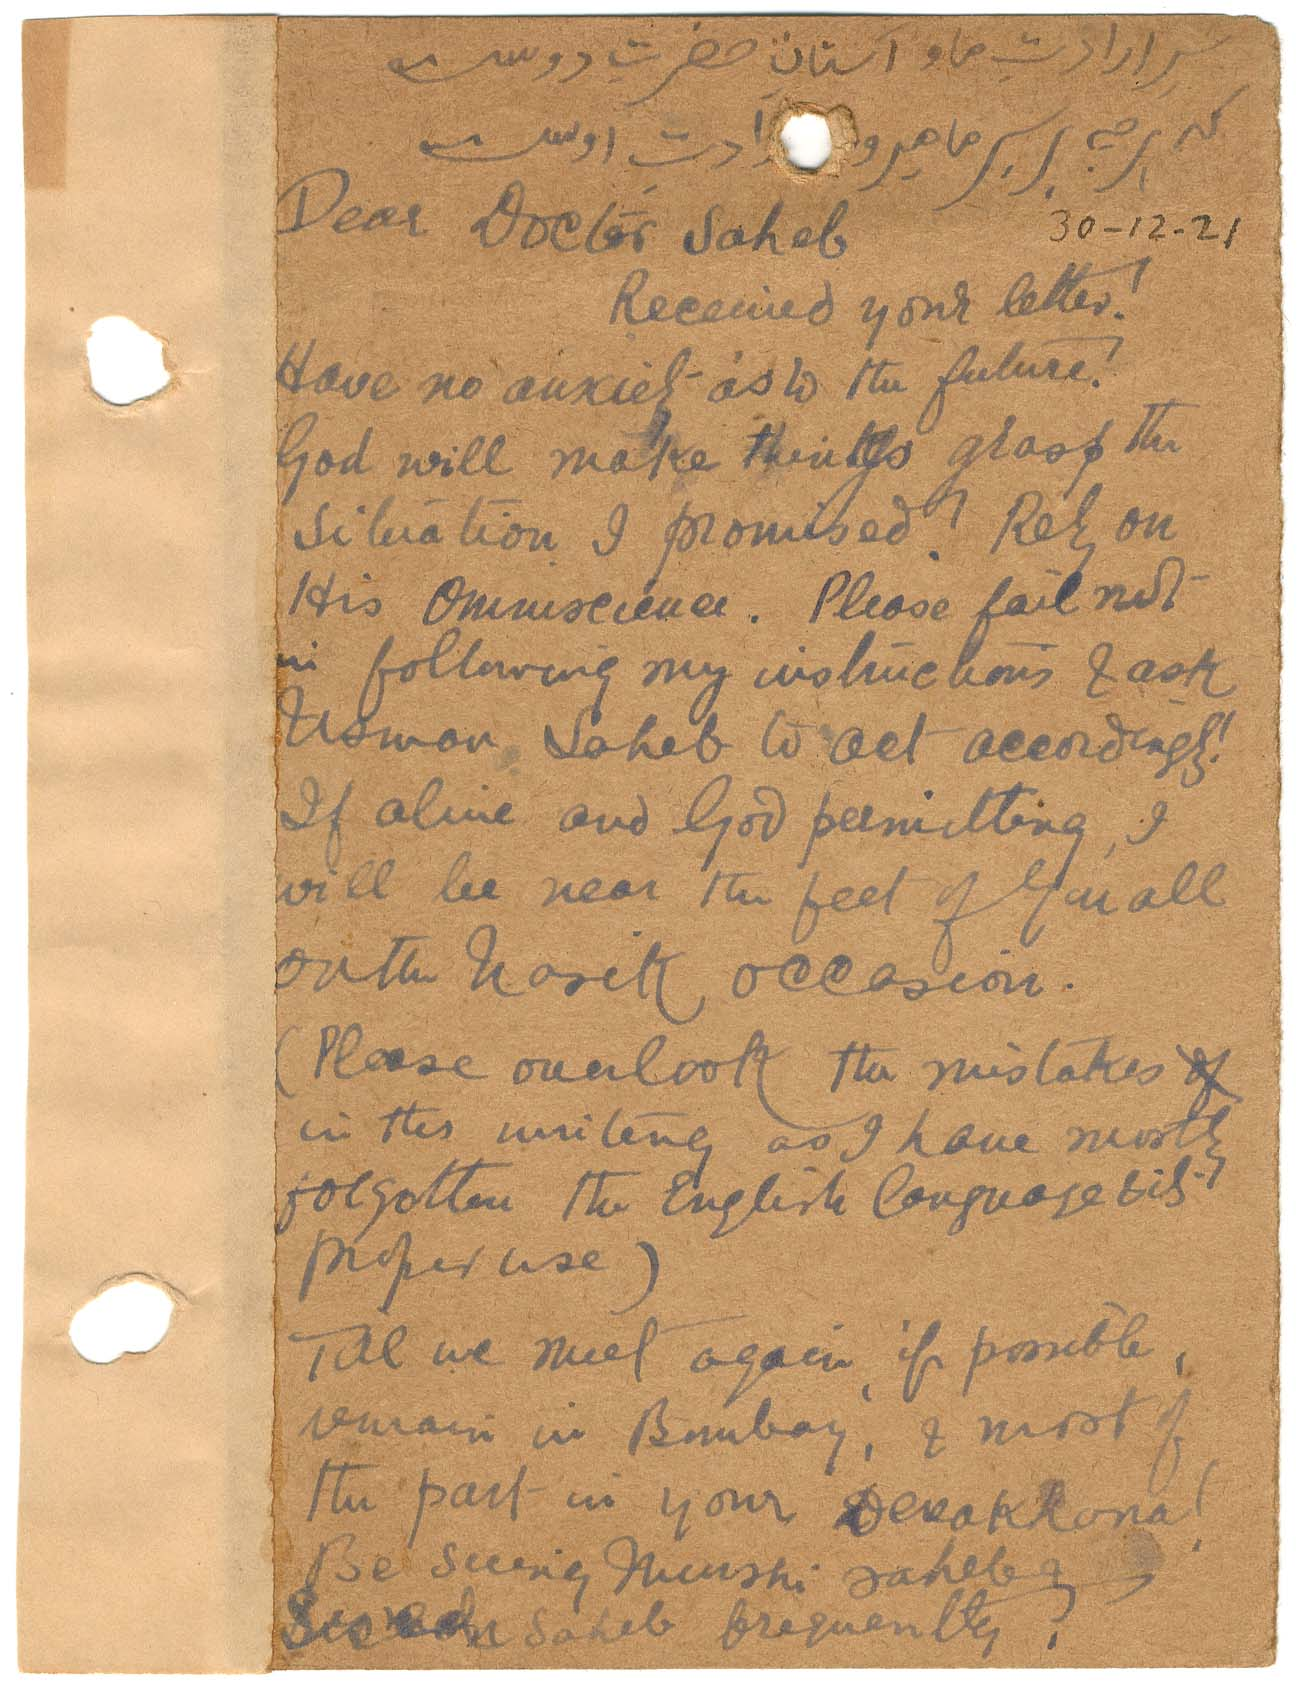 """LETTER FROM AVATAR MEHER BABA to Dr. Abdul Ghani Munsiff on December 30, 2021. The Hafiz couplet in Persian is at the top of page one of the letter. The first line of the letter, Meher Baba writes, """"Have no anxiety as to the future!"""" (Image: Courtesy  Avatar Meher Baba Trust Archives )"""